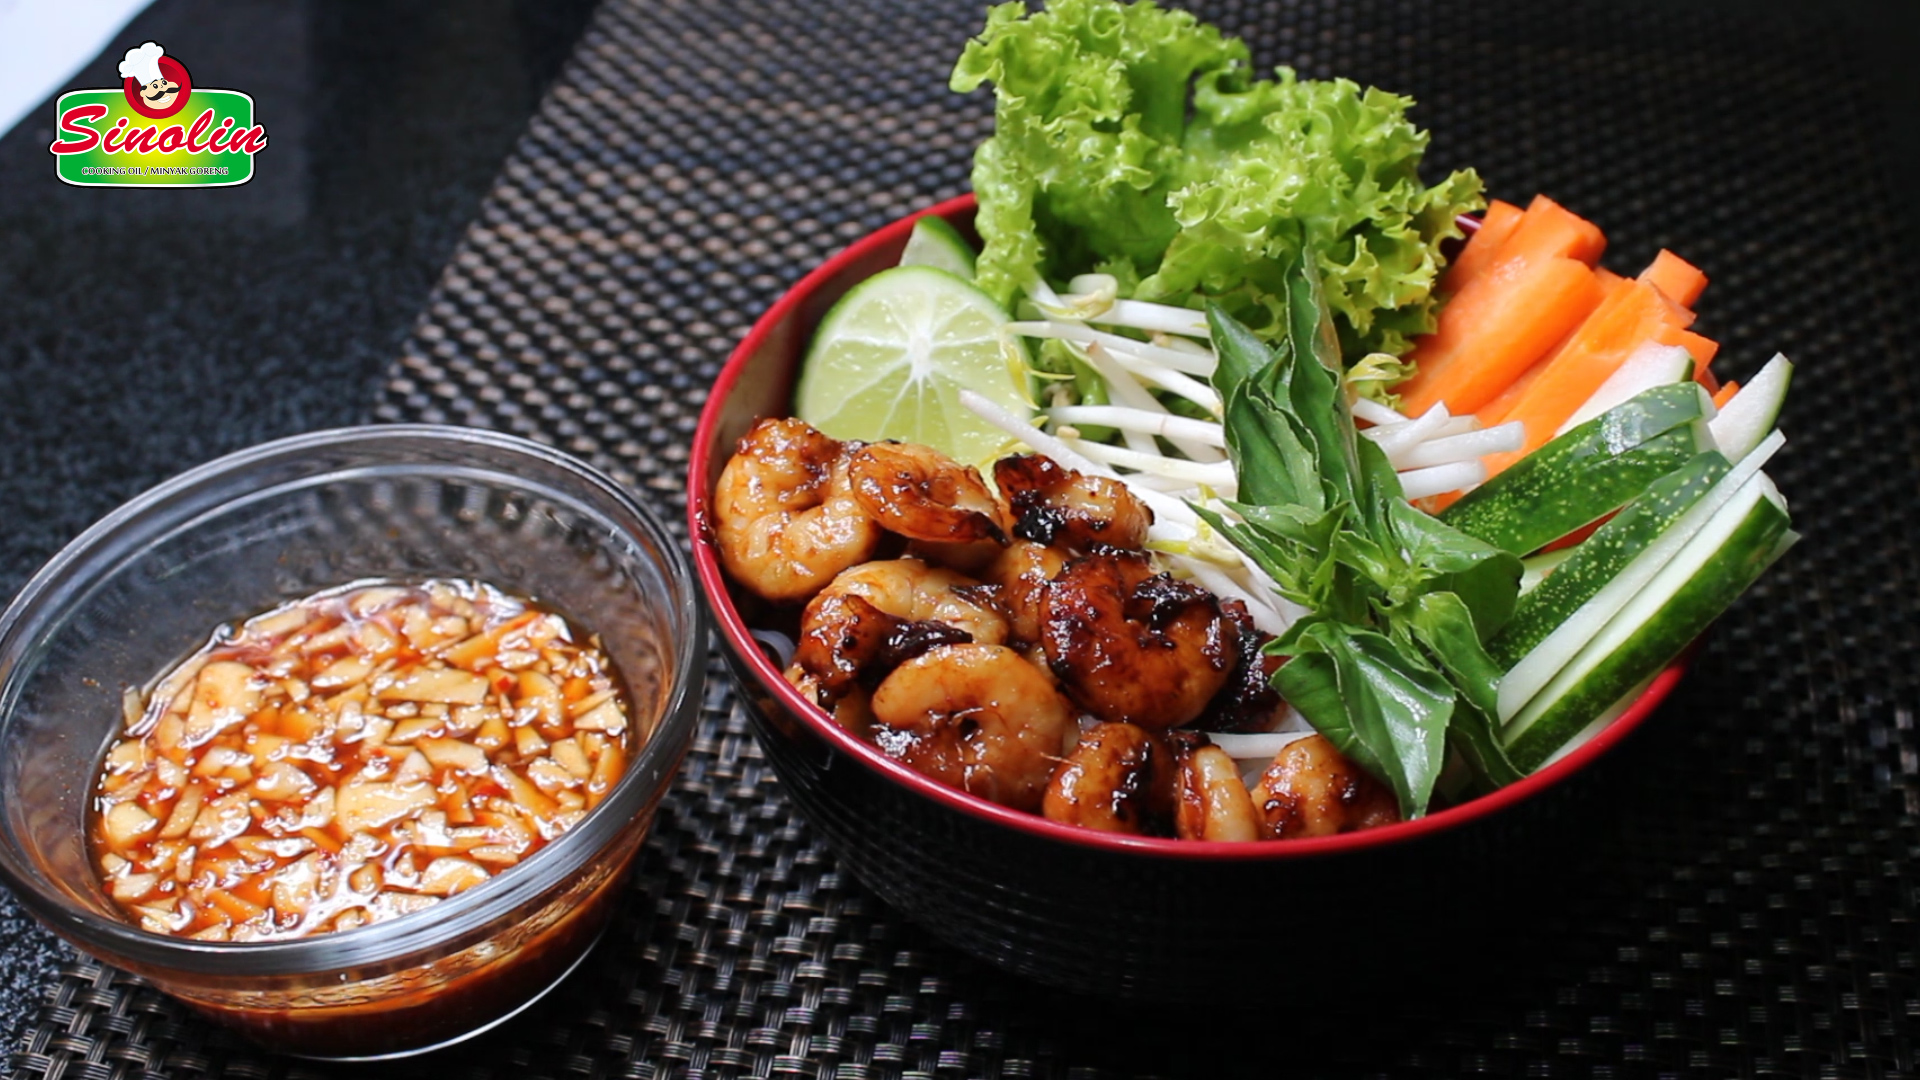 Vietnamese Shrimp Salad with Noodles By Dapur Sinolin